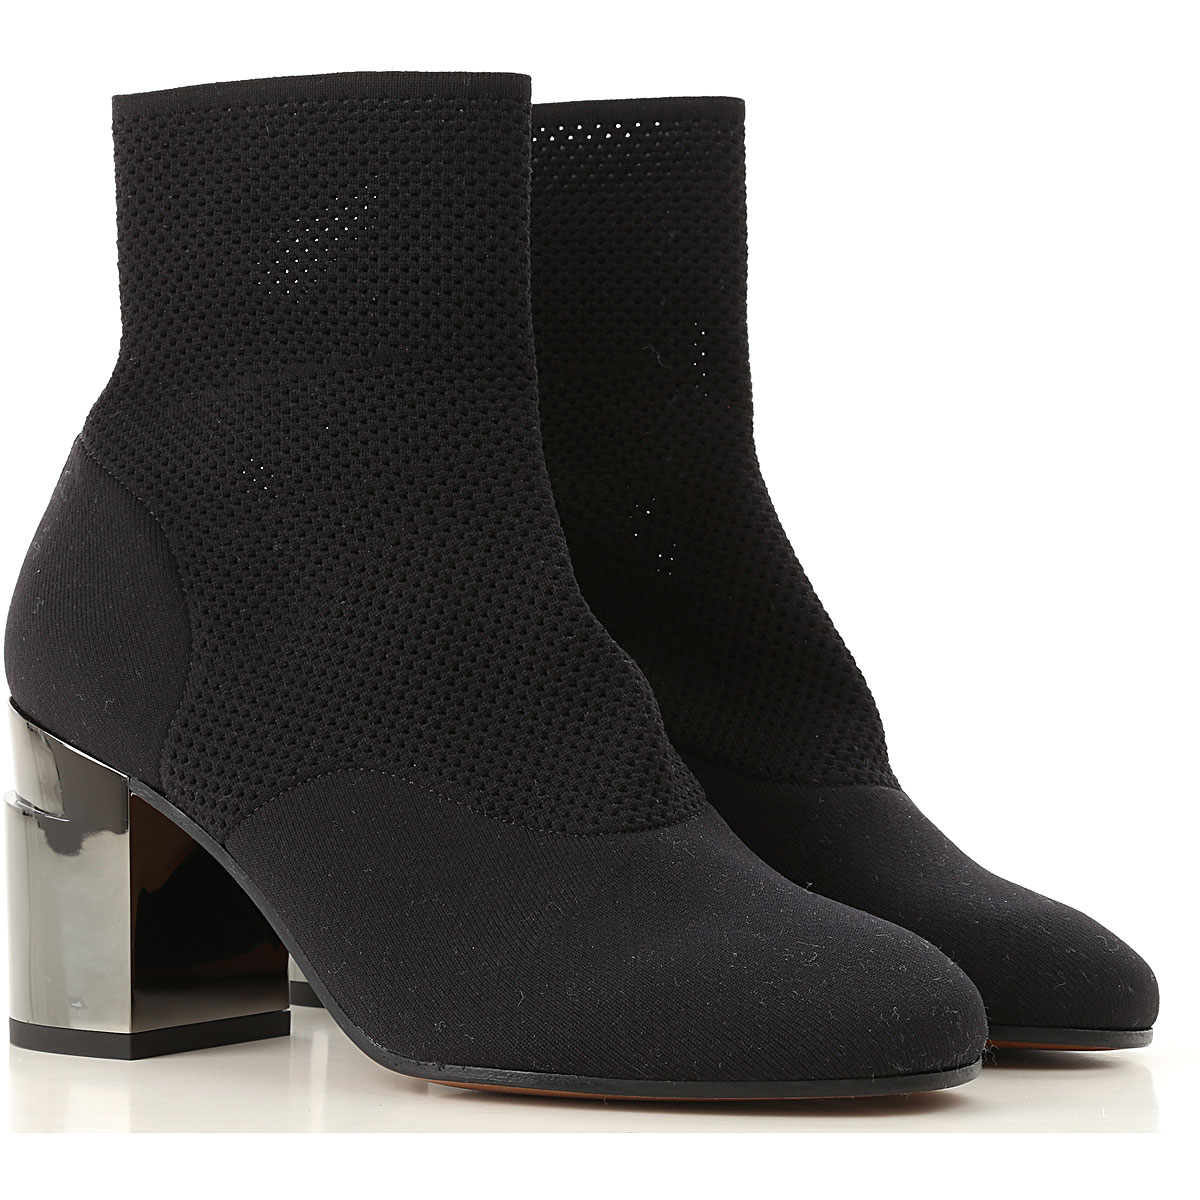 Image of Clergerie Paris Boots for Women, Booties, Black, Fabric, 2017, 10 11 6 7 8 8.5 9